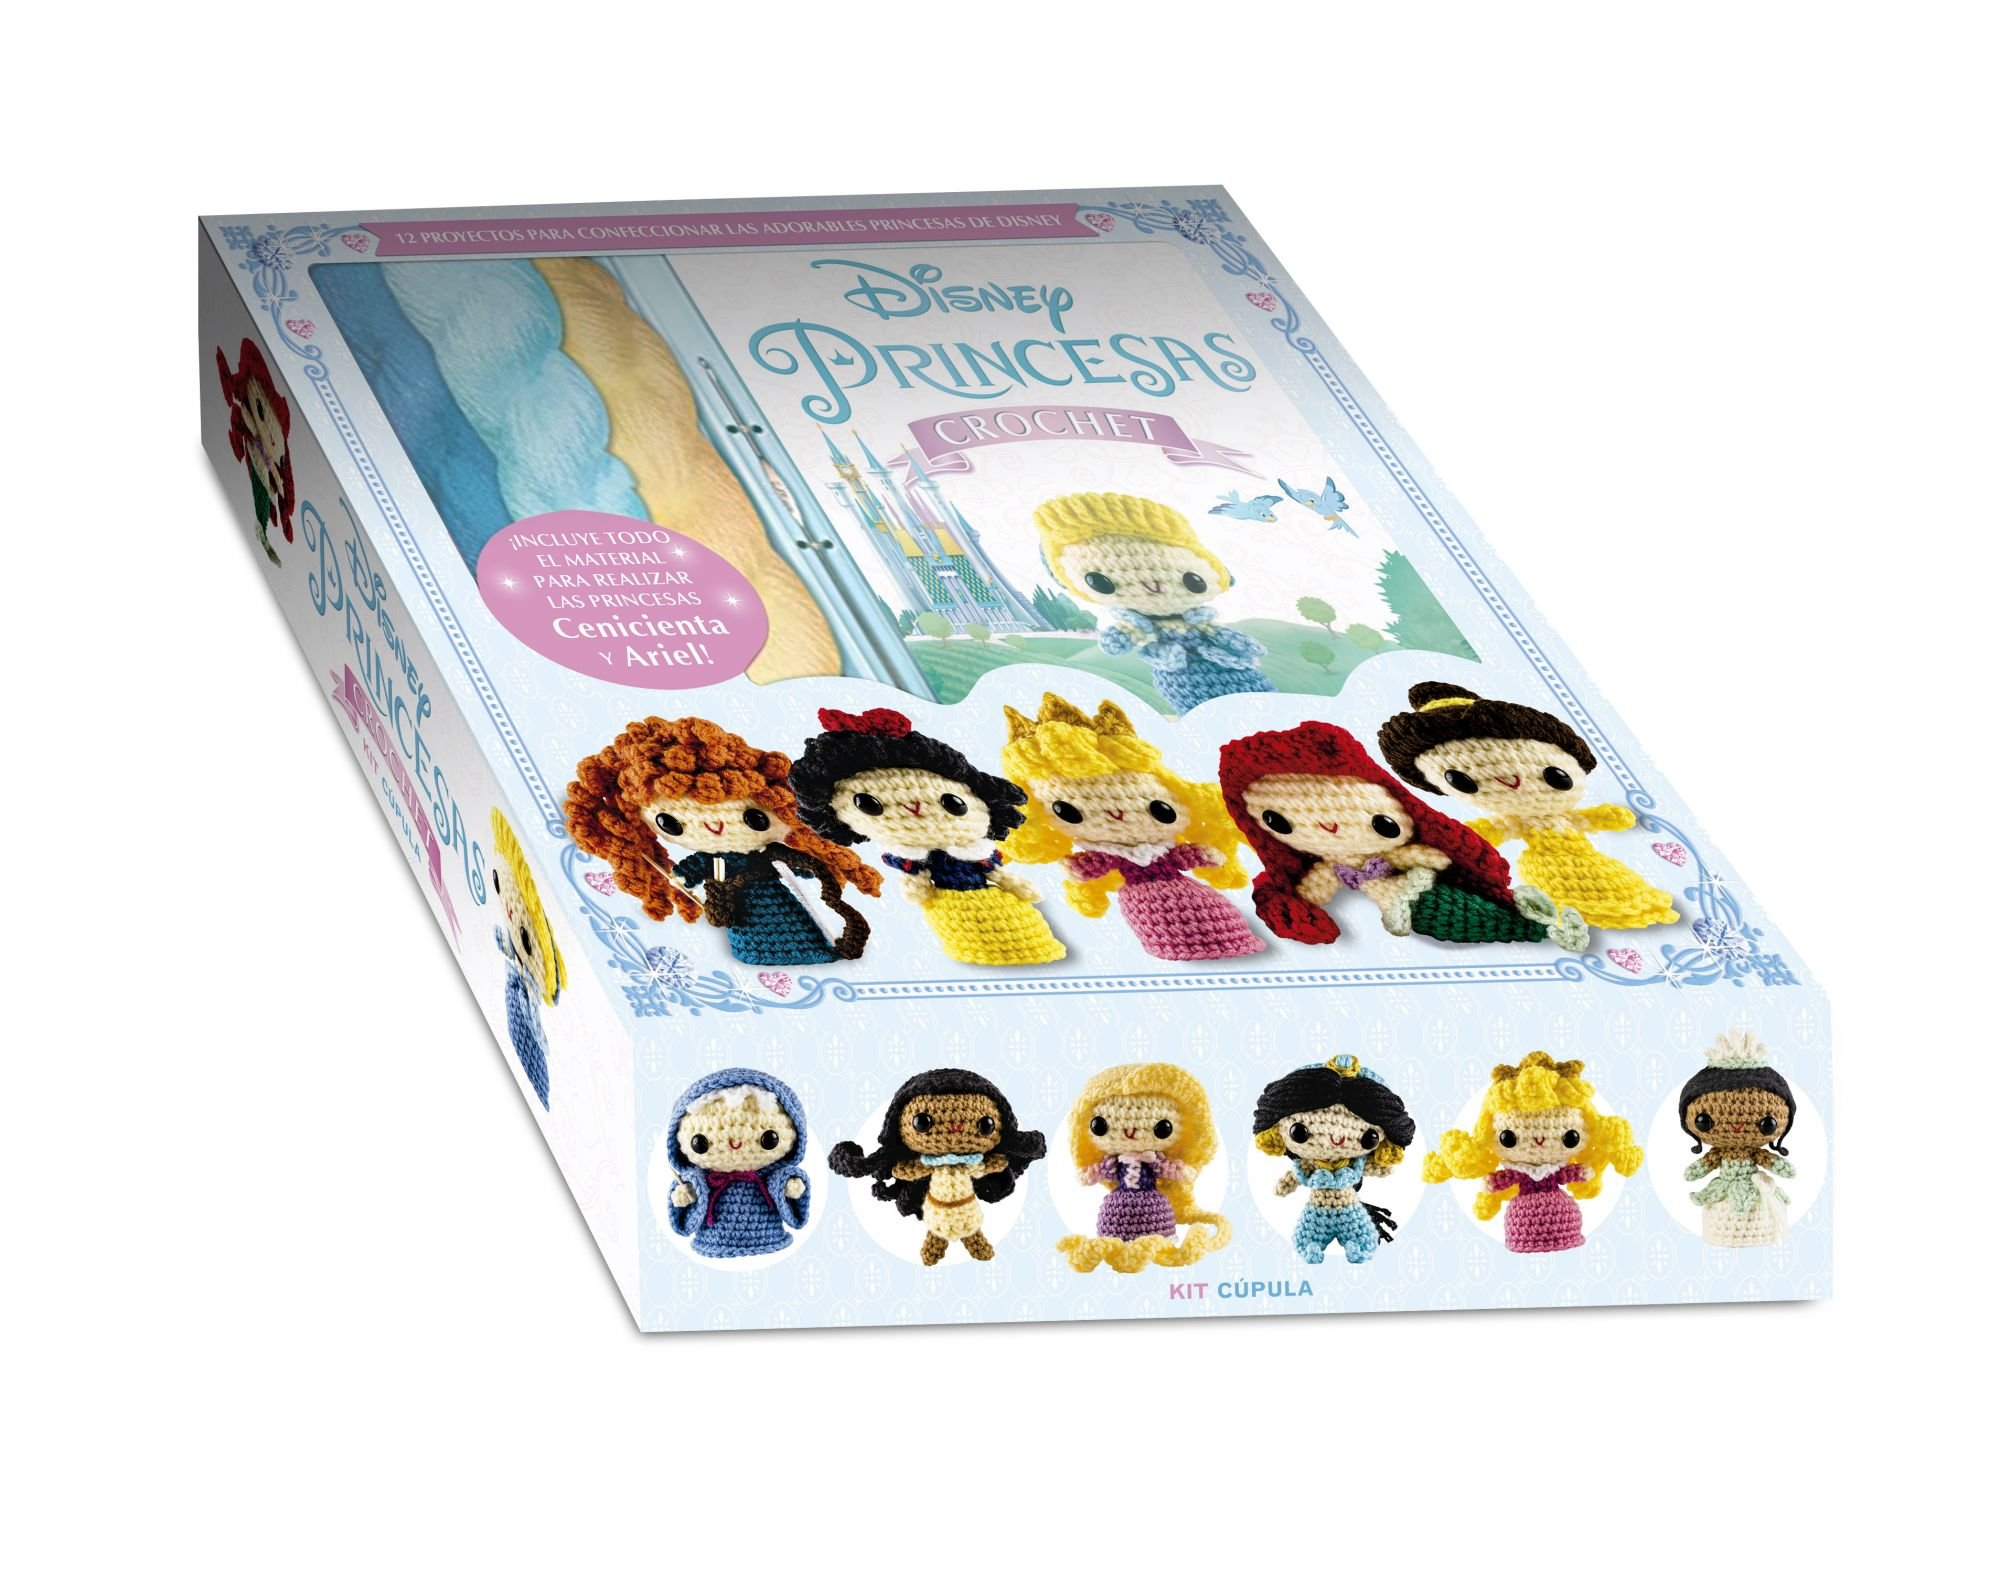 Kit Tus princesas Disney crochet product image